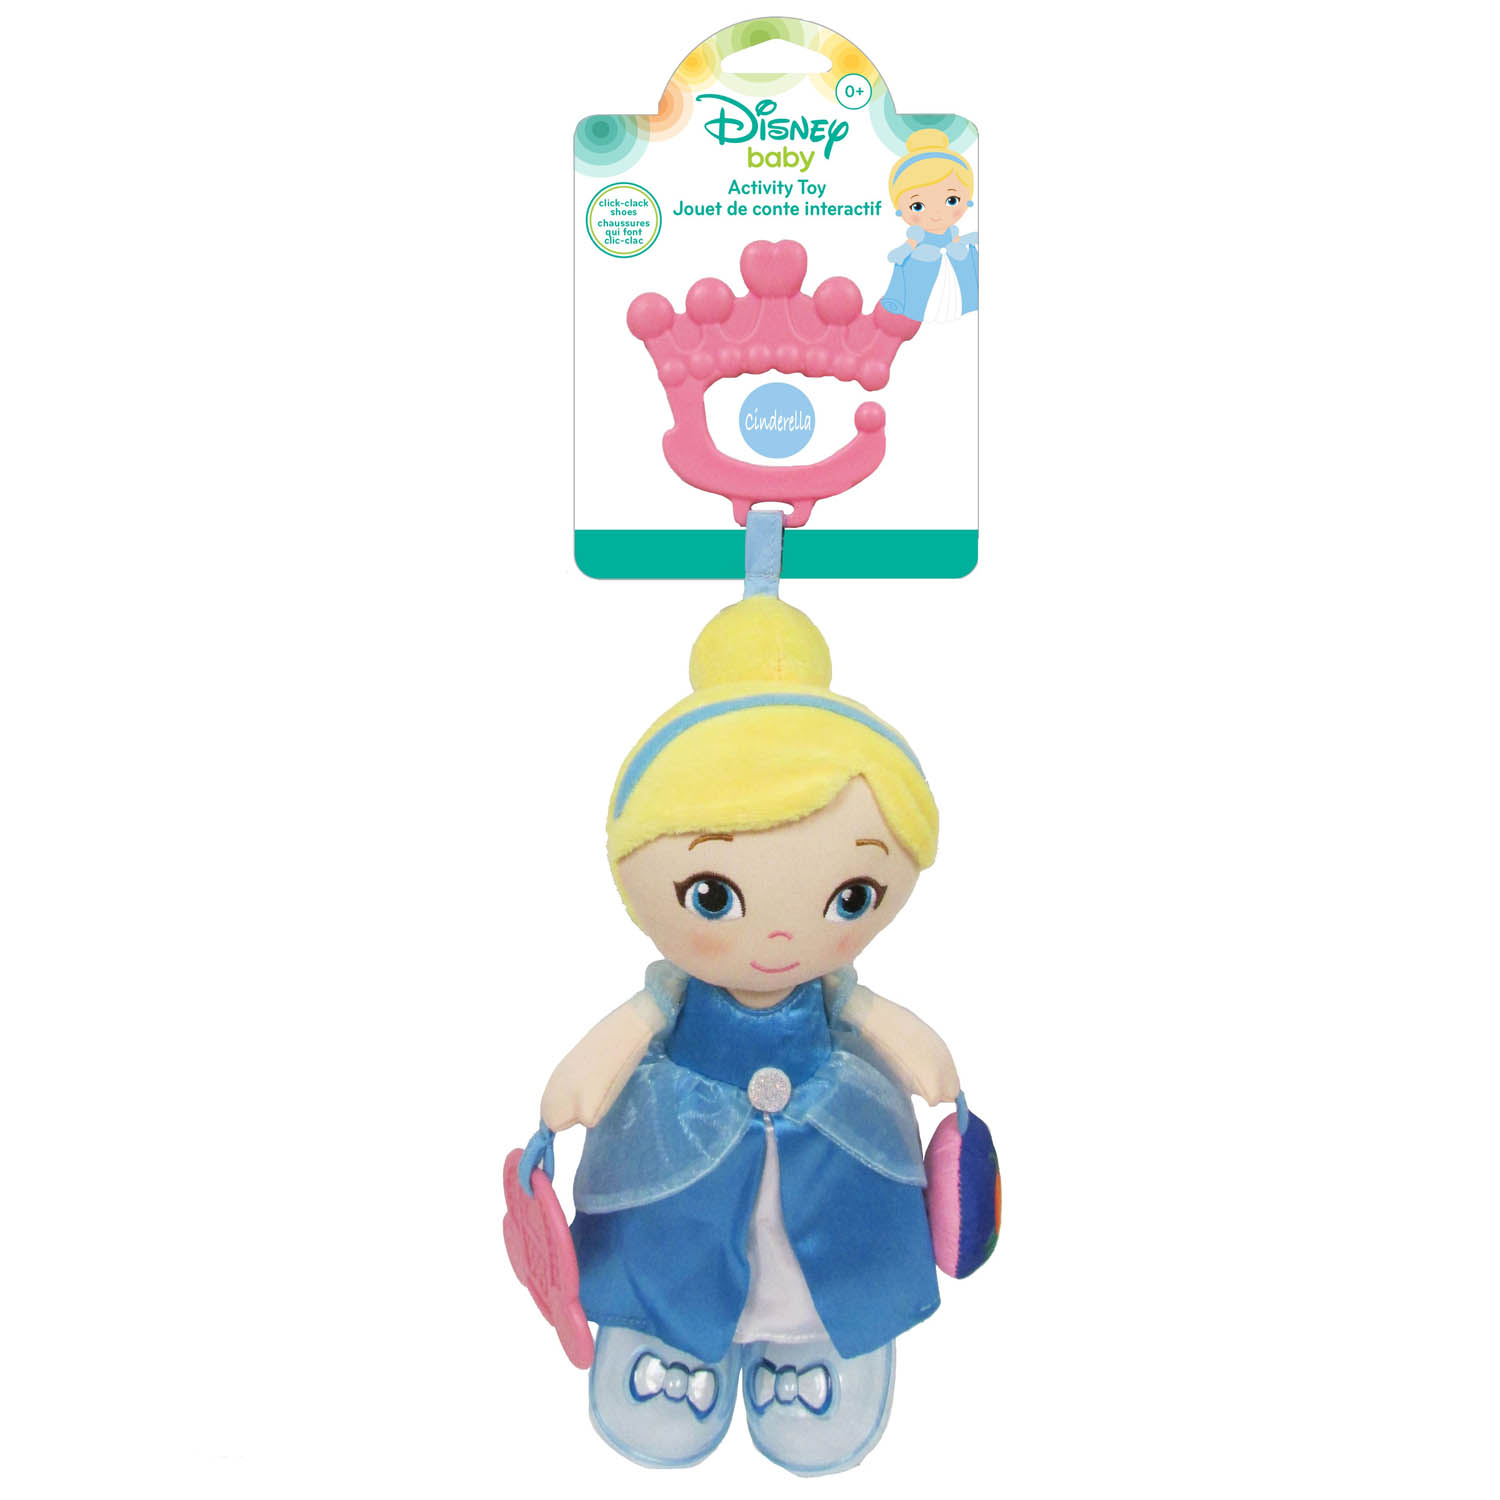 Disney Baby Disney Princess Cinderella Plush Baby Activity Toy